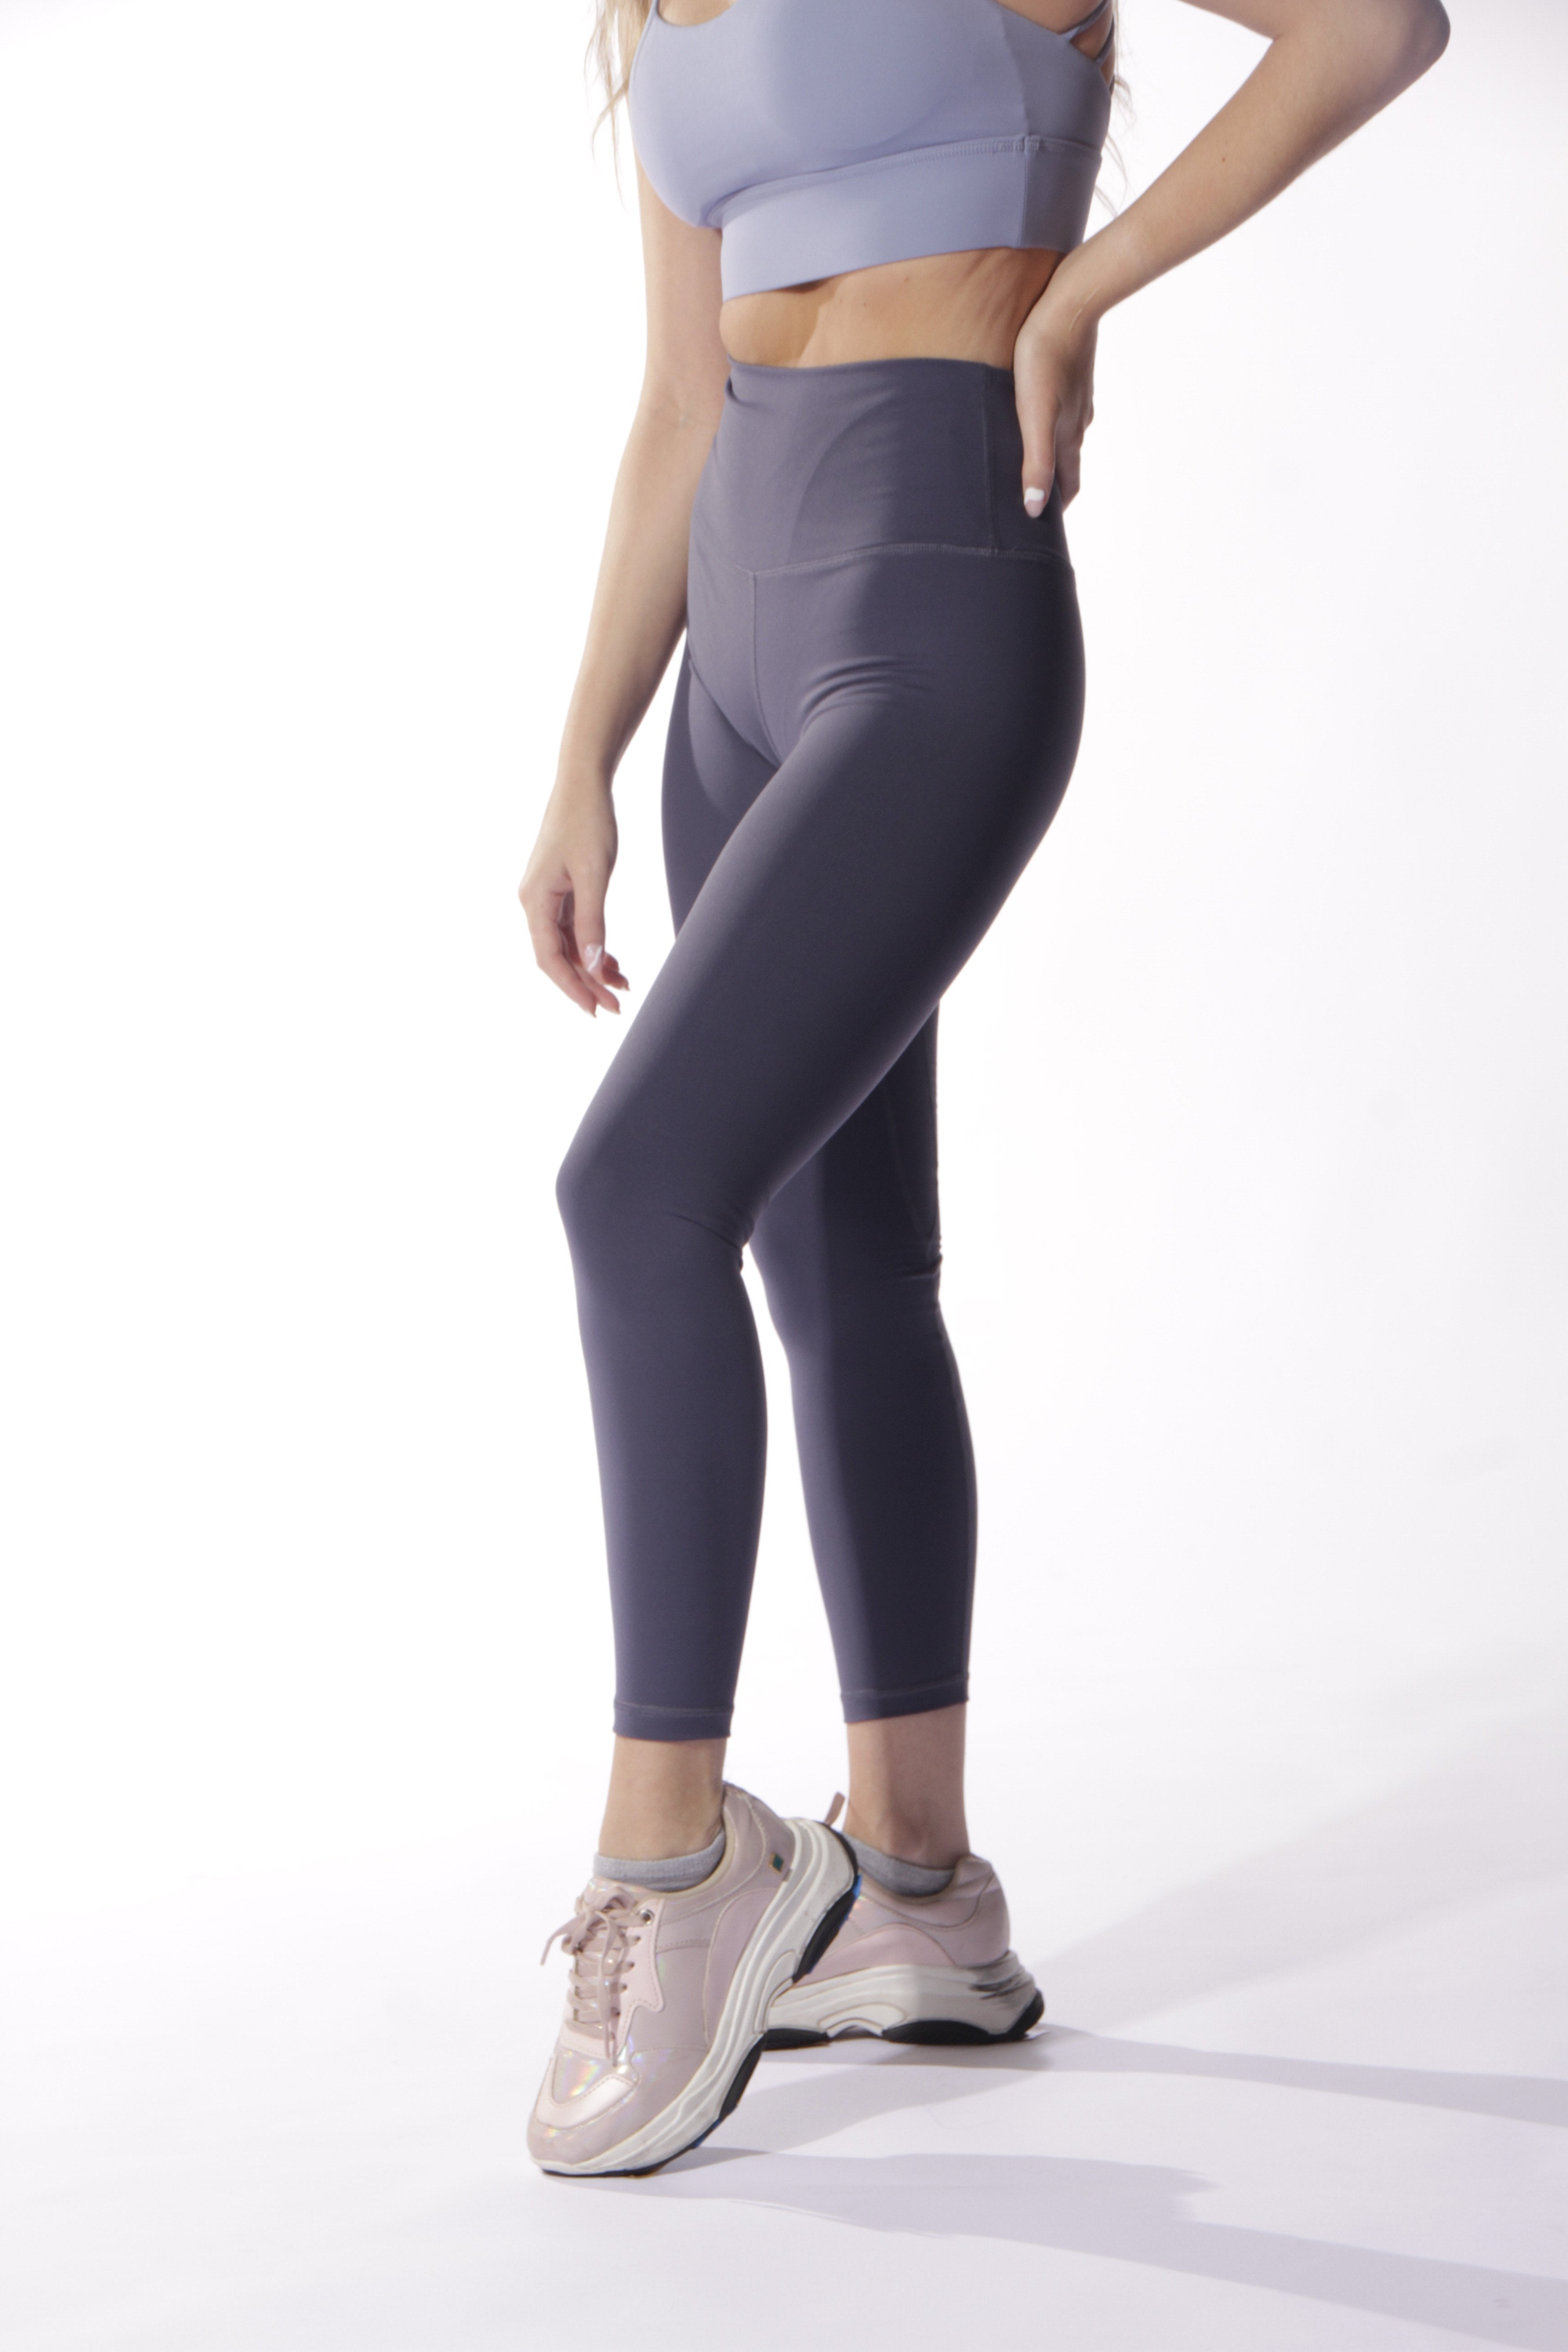 COMFY BASIC LILAC GREY - ZIBA Activewear